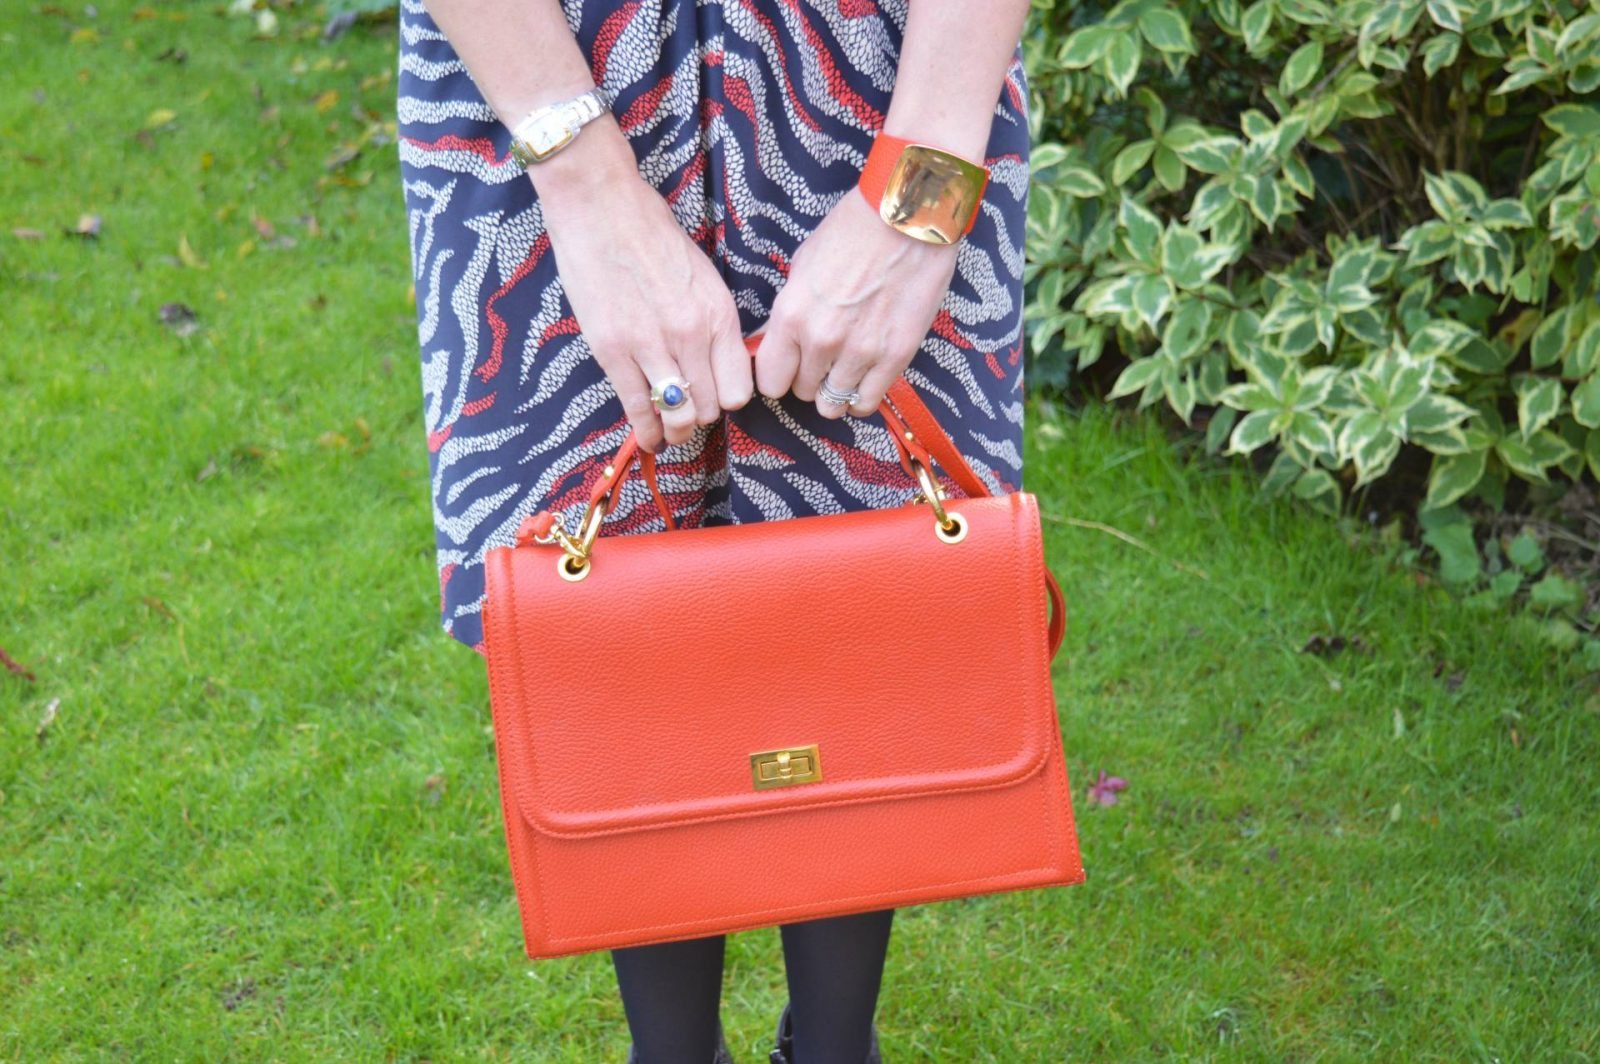 Anne Klein Dress for Less Than a Fiver orange leather bag Mango orange cuff